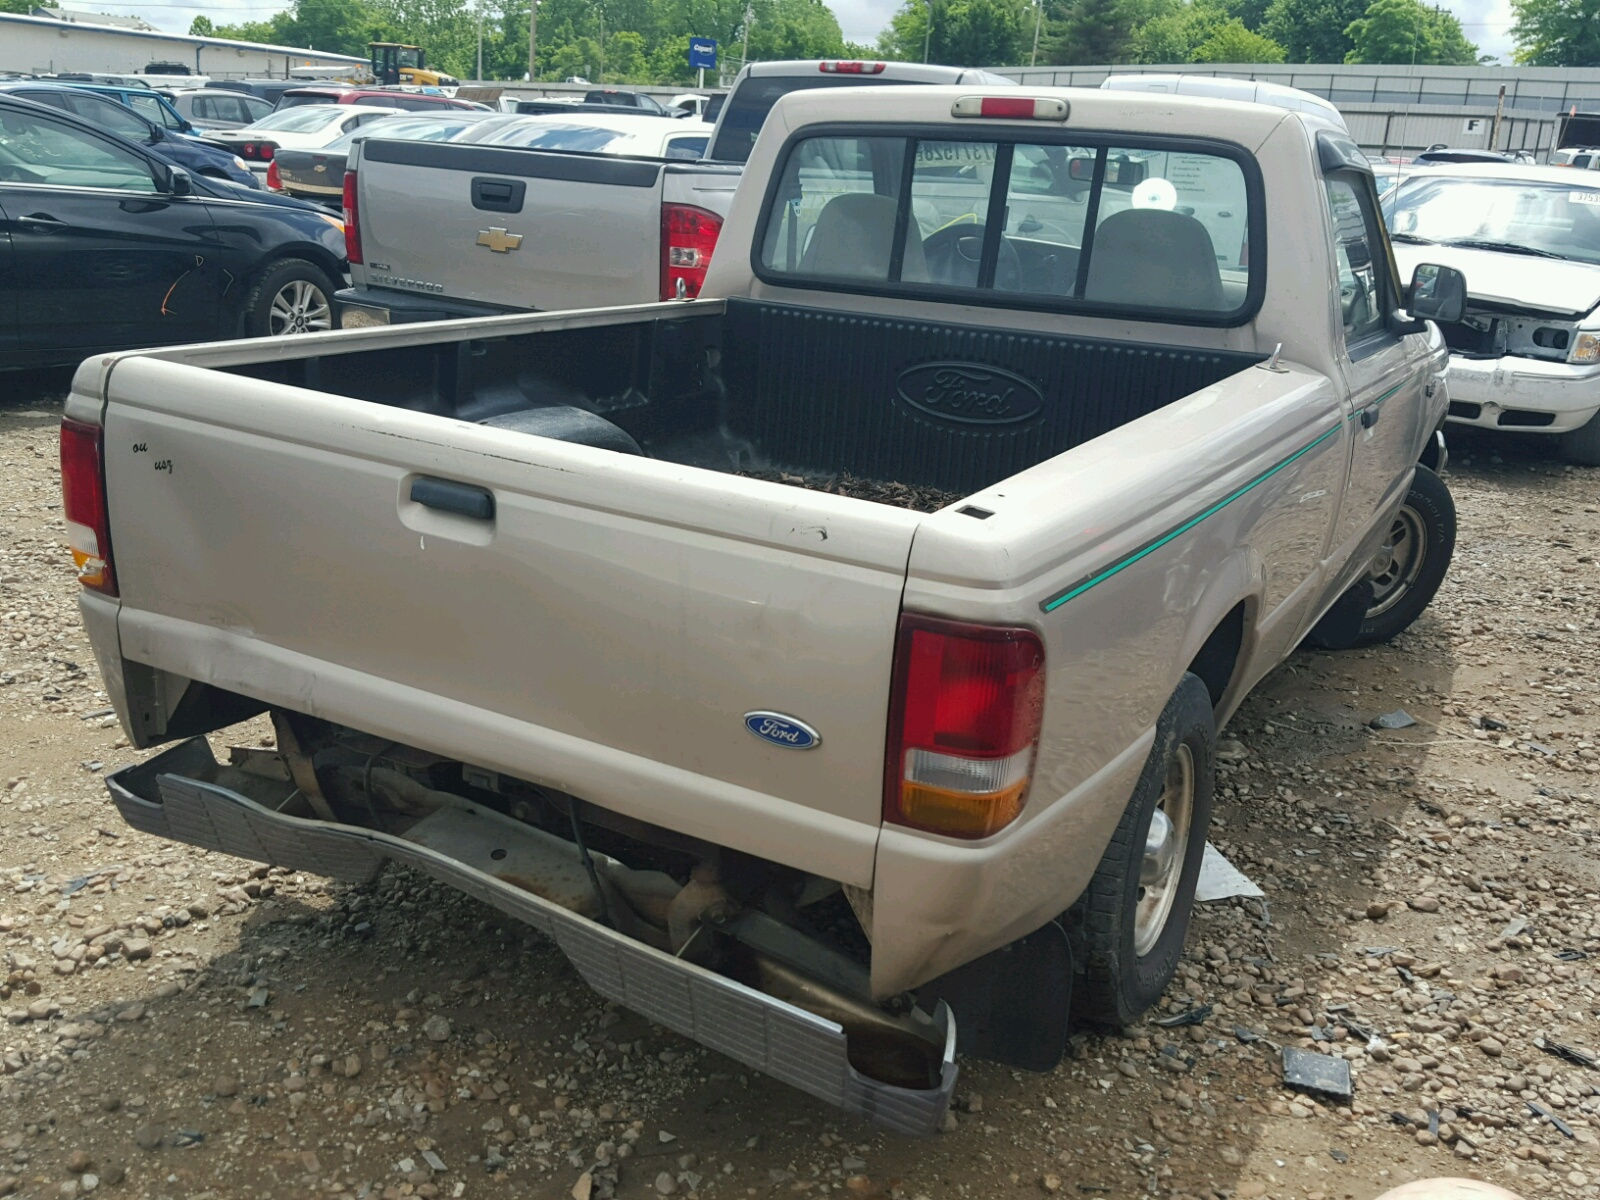 1ftcr10a7vpb52938 1997 Gold Ford Ranger On Sale In Mo St Louis 1955 F100 Pick Up 23l Rear View